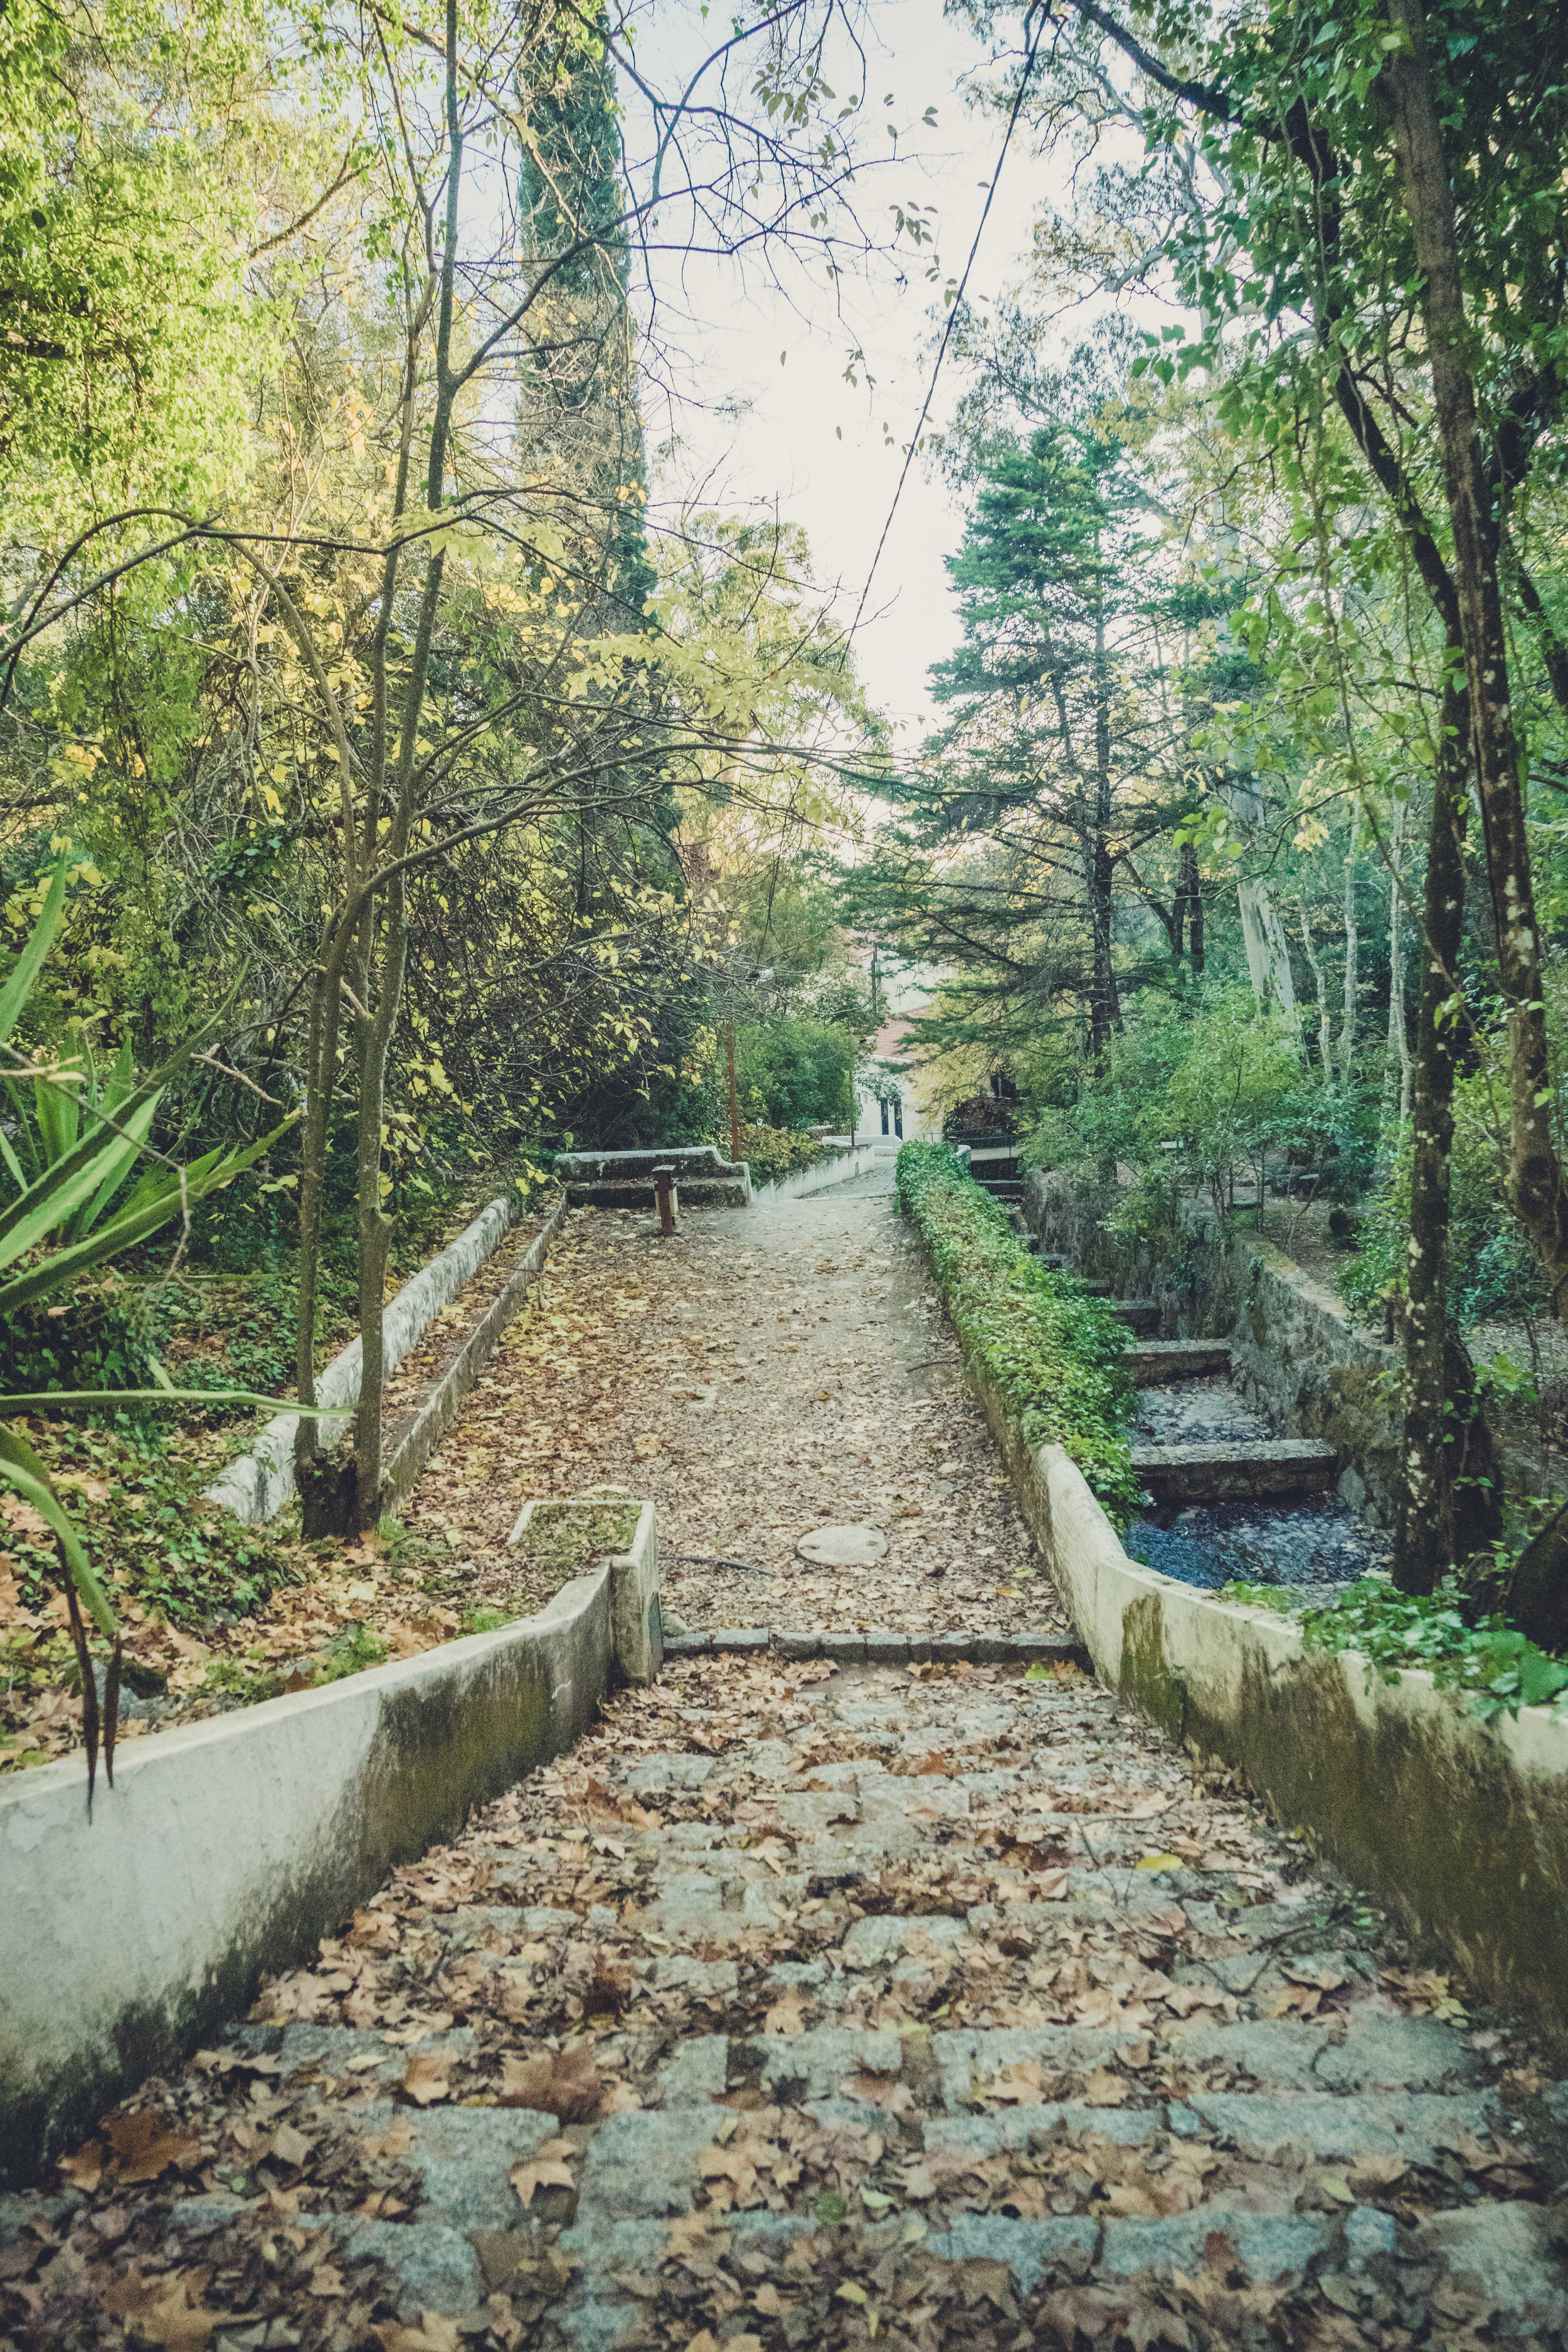 caldas de monchique portugal. walking through the forest. walking through the grounds of the spa. lovely setting. cobble path.jpg